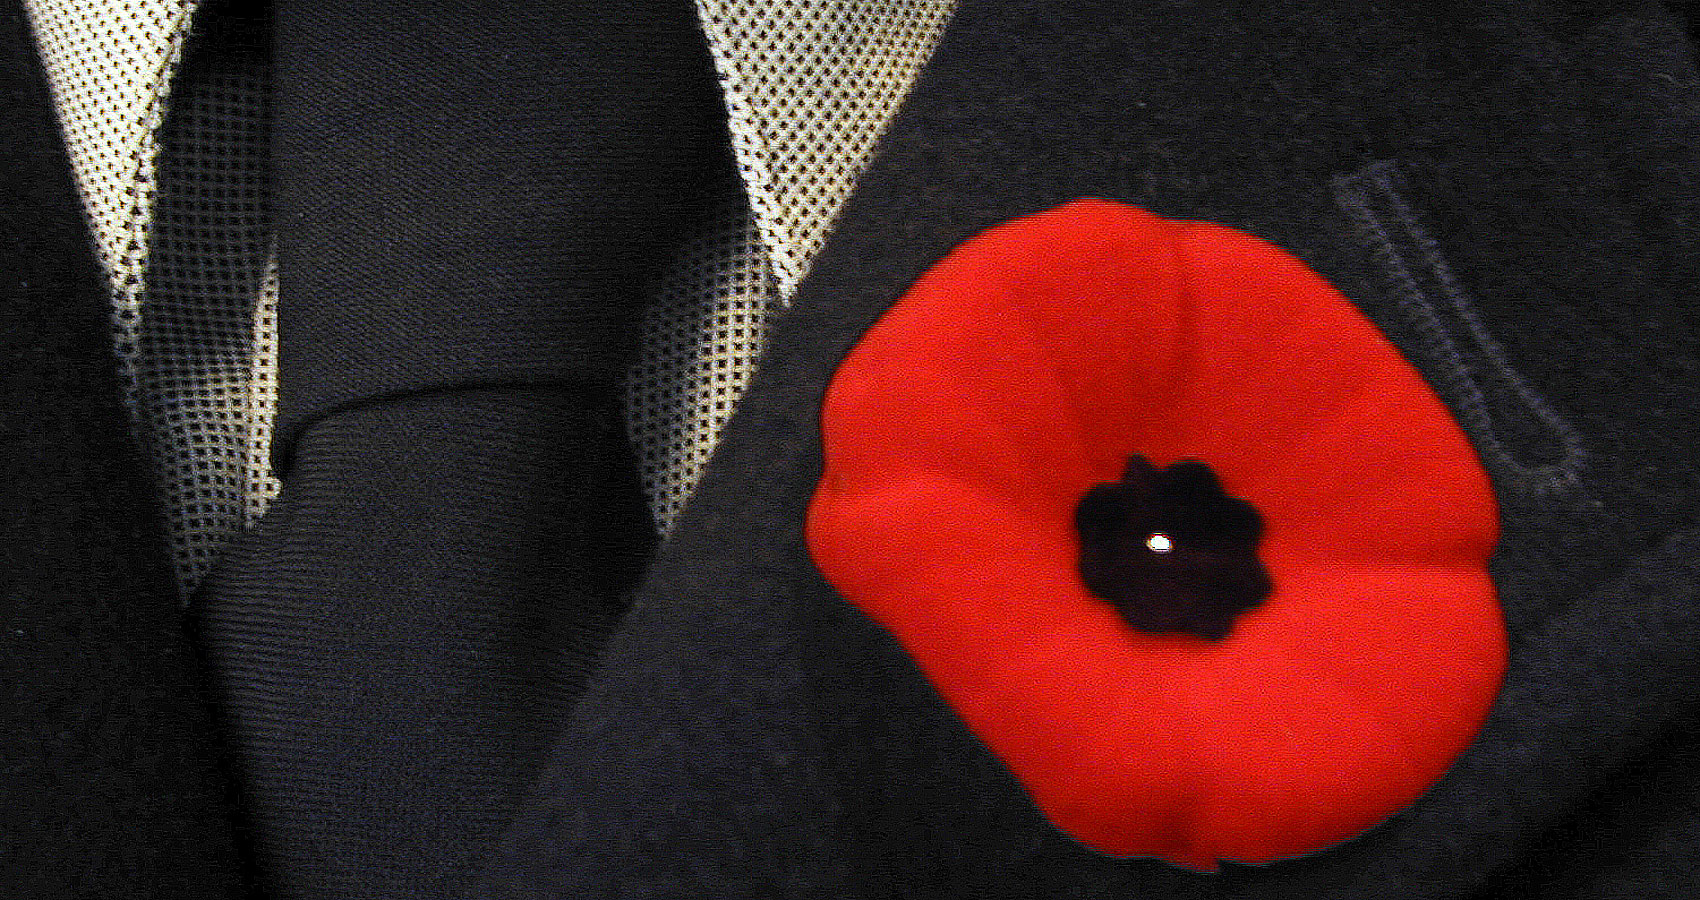 Remembrance Reality written by Nobby66 at Spillwords.com